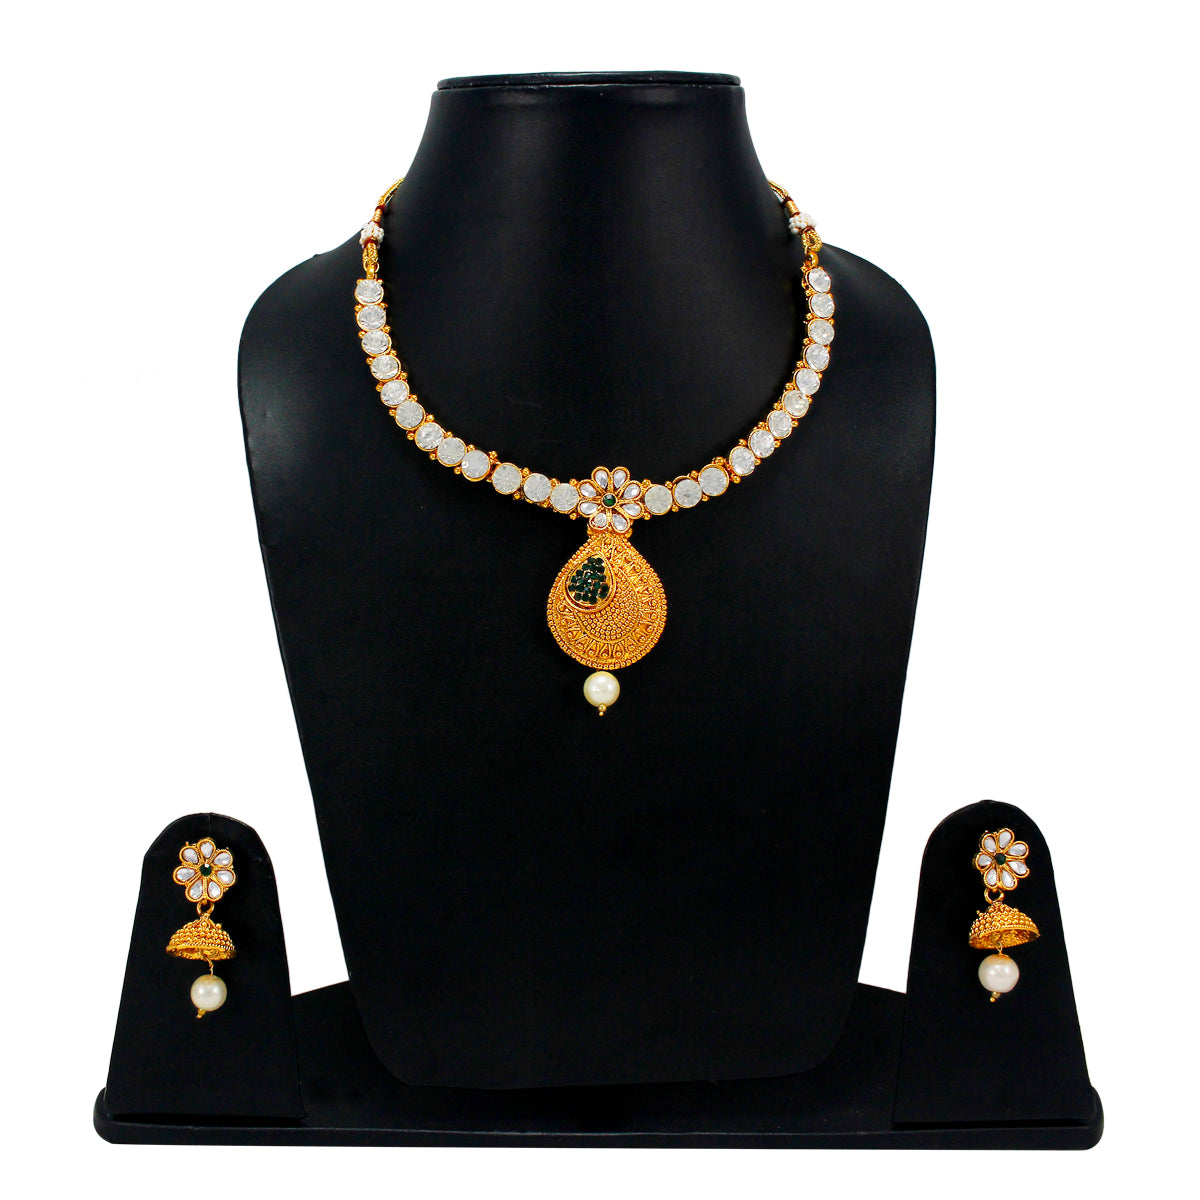 Royal Gold Plated Designer Kundan Stone Rani Har Design Necklace Floral Drop Shape and Earrings with White Green Stones  and Pearls